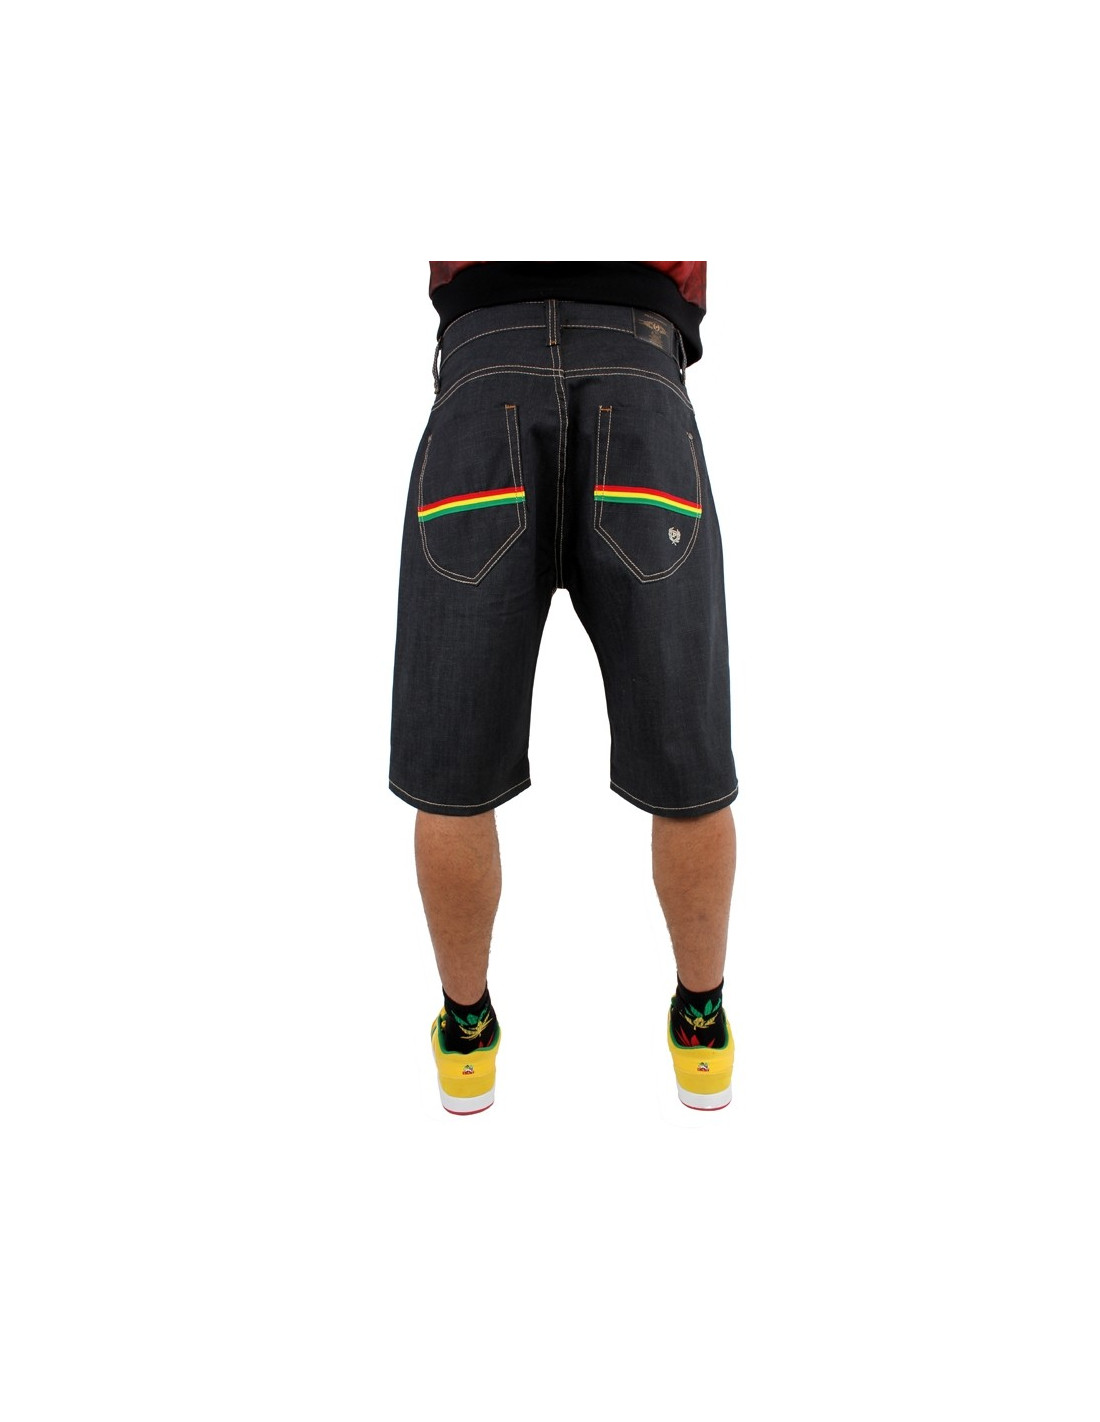 Phat Farm shorts Rasta Stripes Baggy Raw denim Japan Denim